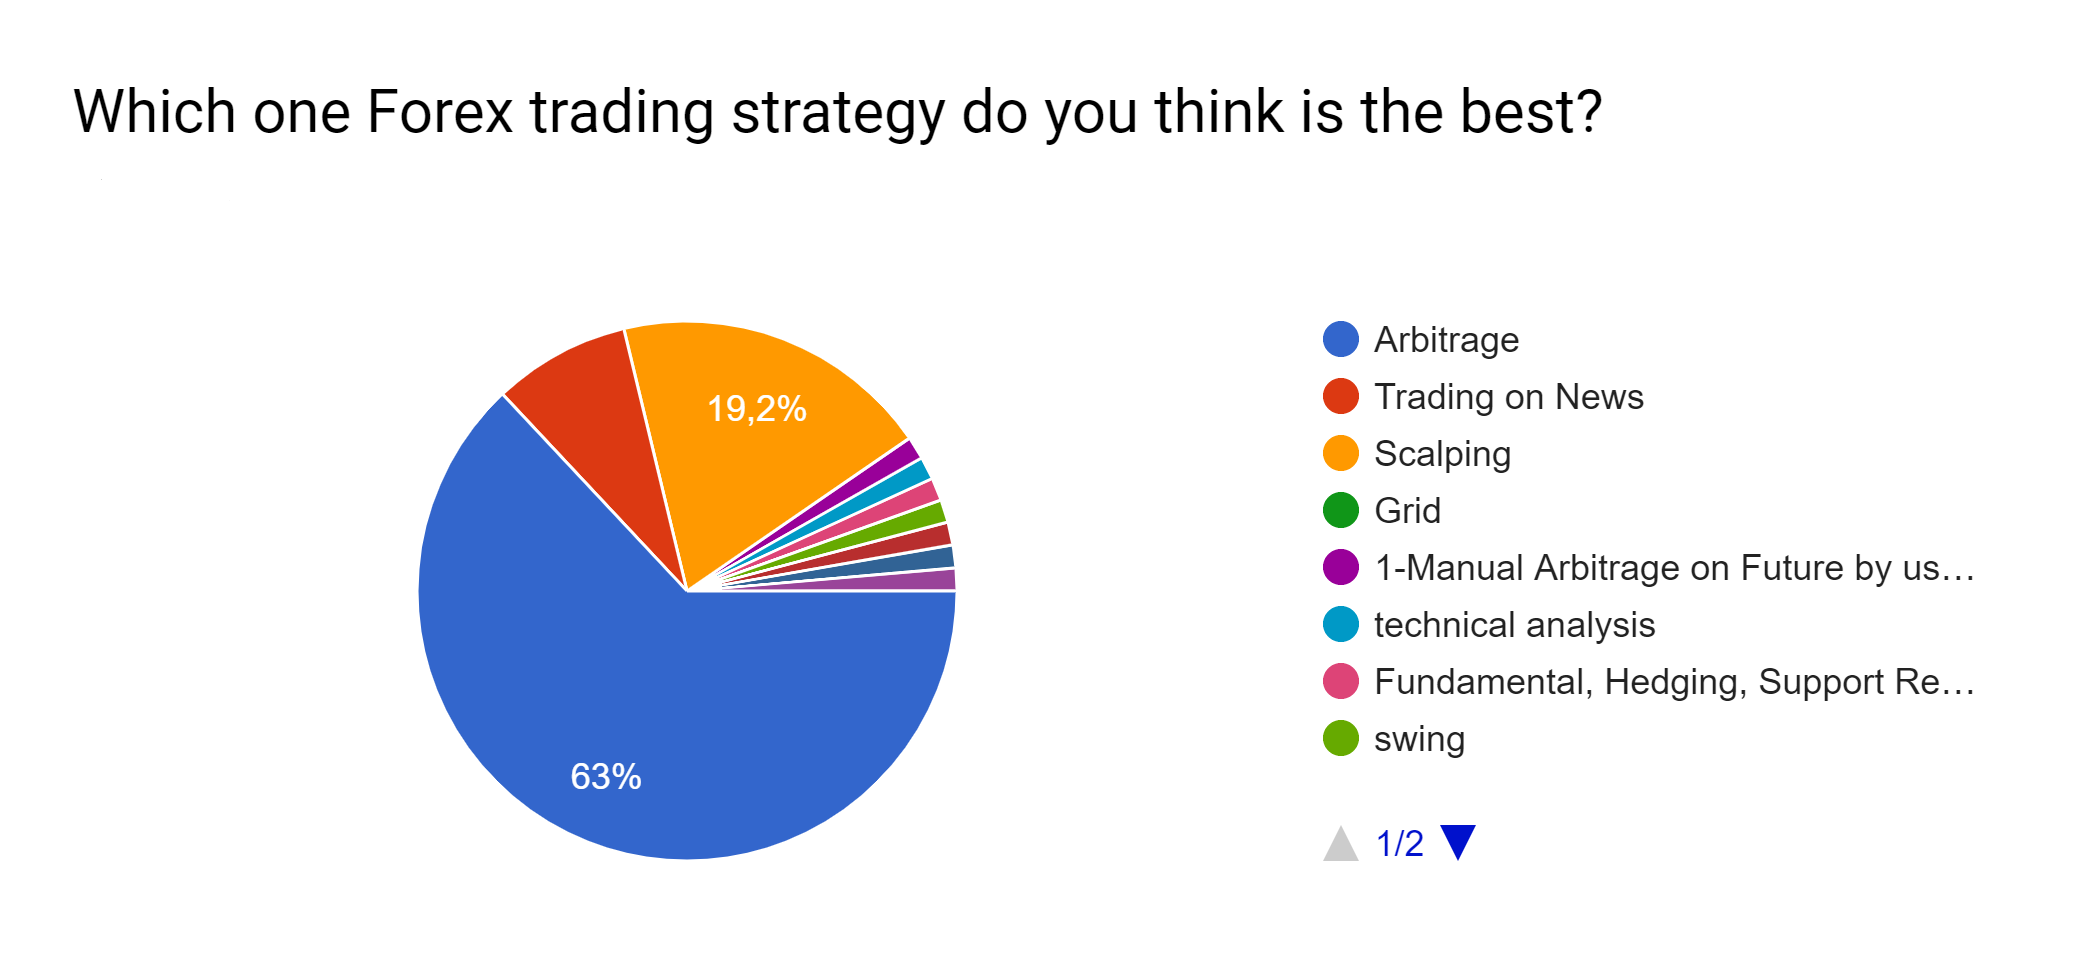 Which one Forex trading strategy do you think is the best?